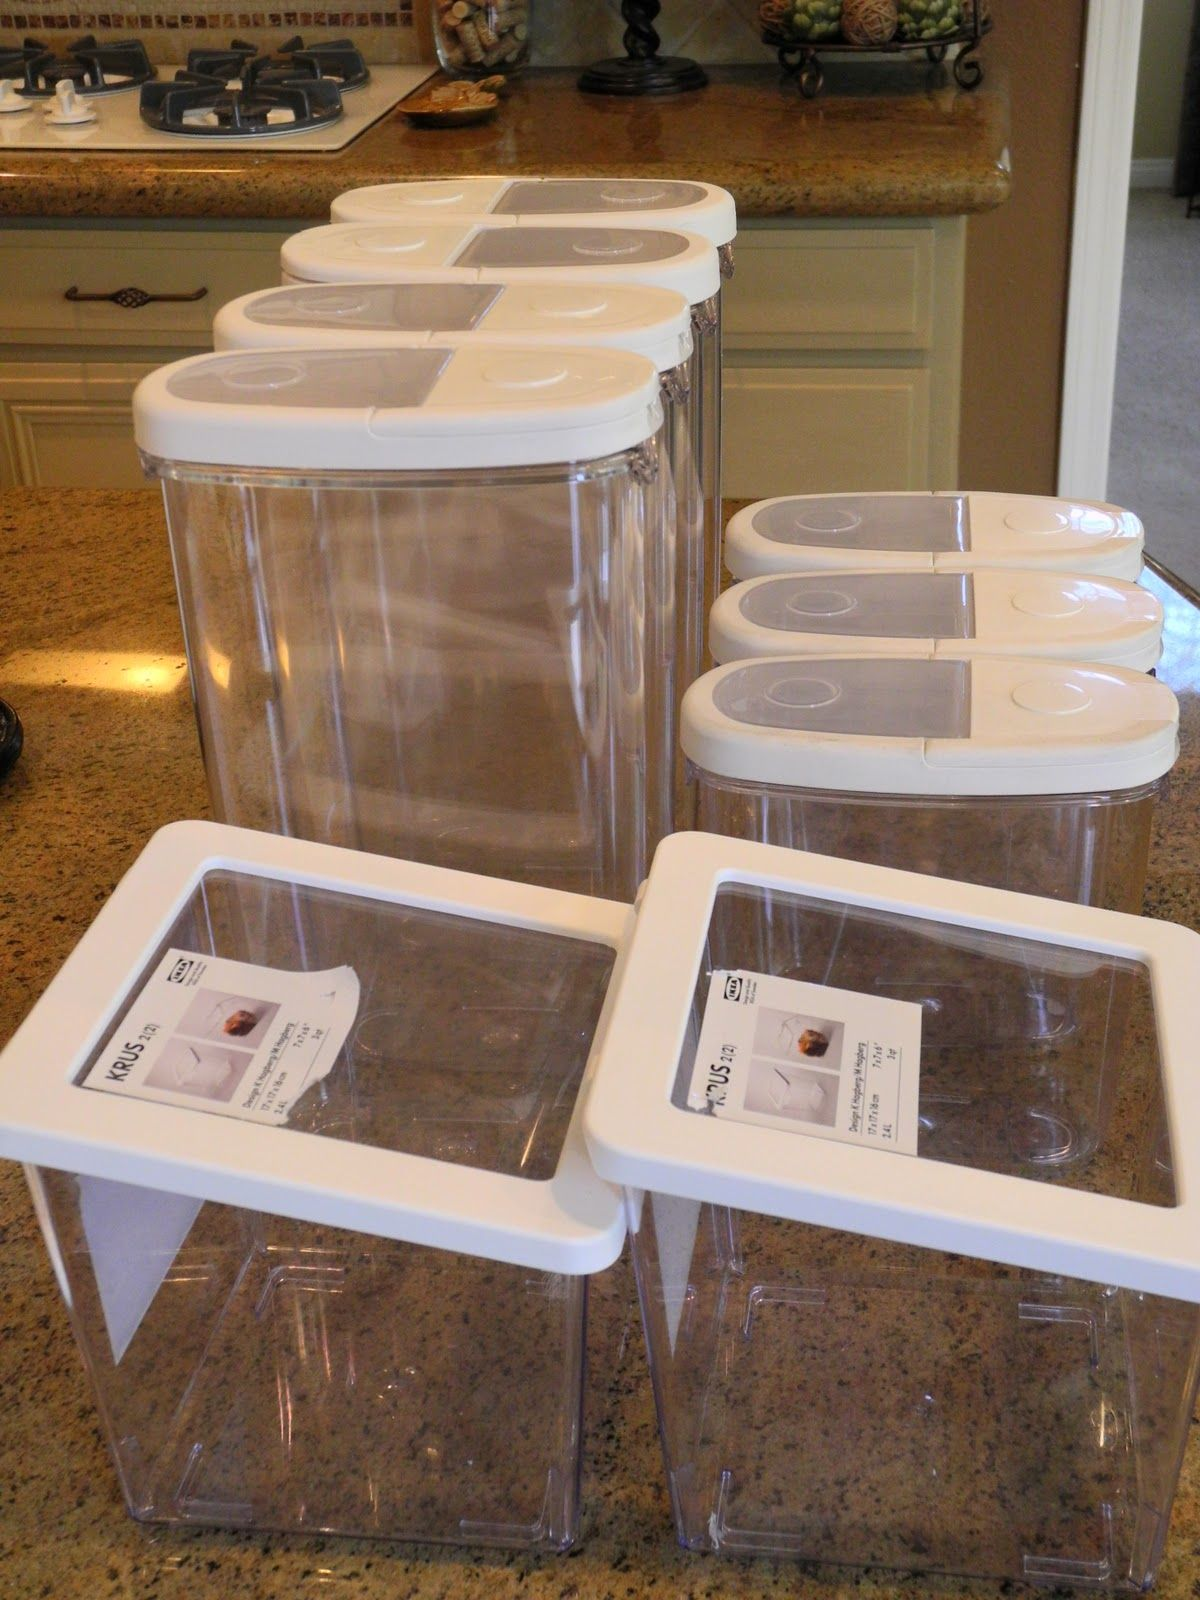 Kitchen Containers Storage Ideas For Small Spaces Bins Organizing Pantry Bpa Free Ikea